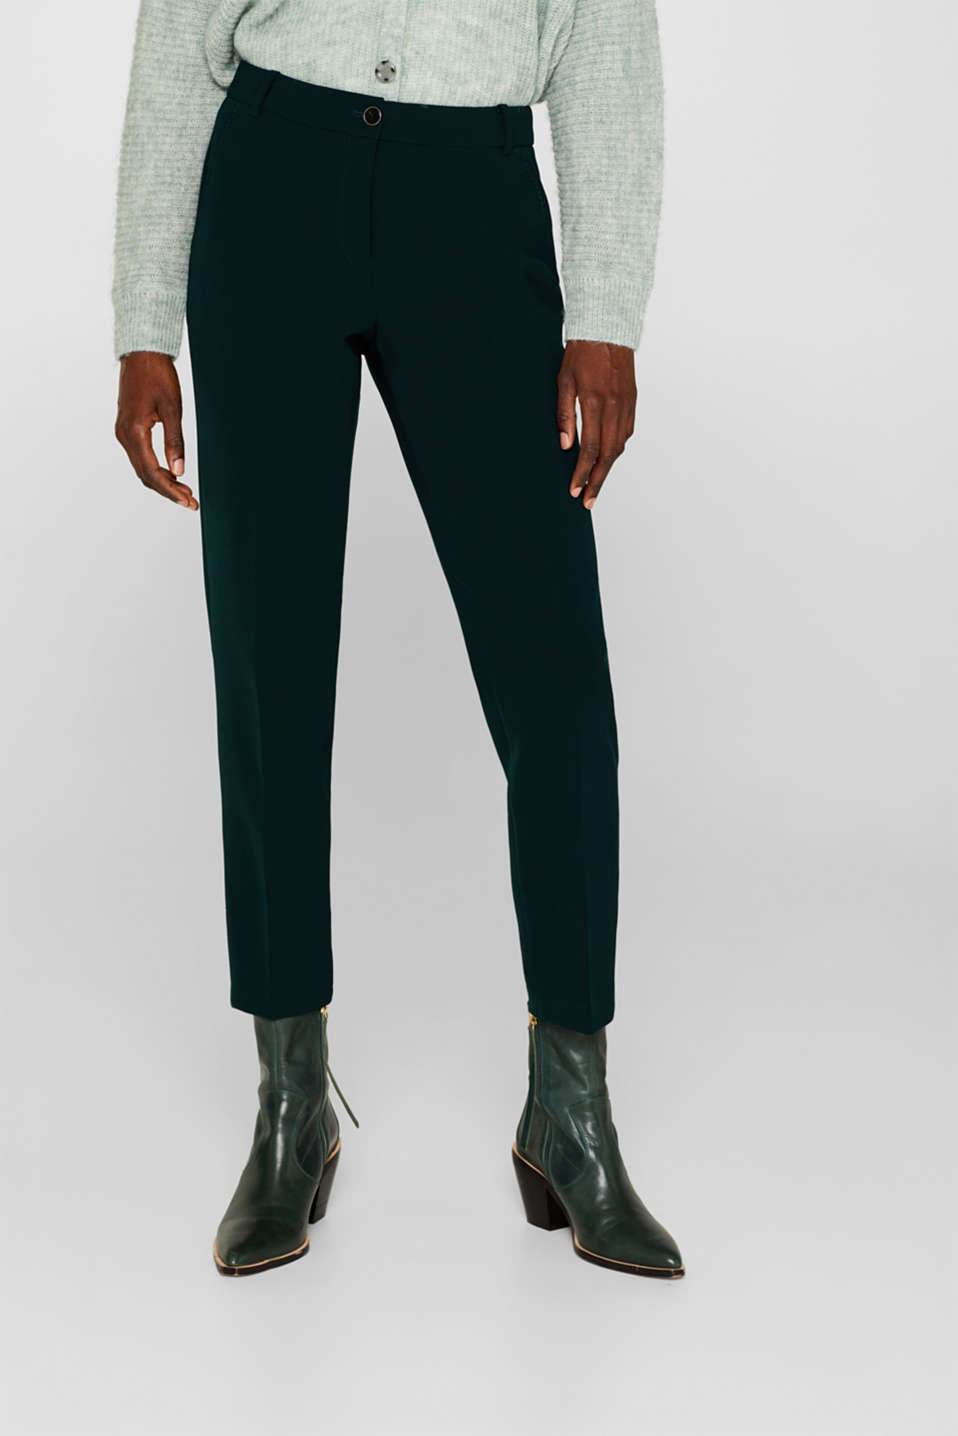 STITCHING mix + match stretch trousers with decorative stitching, DARK TEAL GREEN 2, detail image number 6